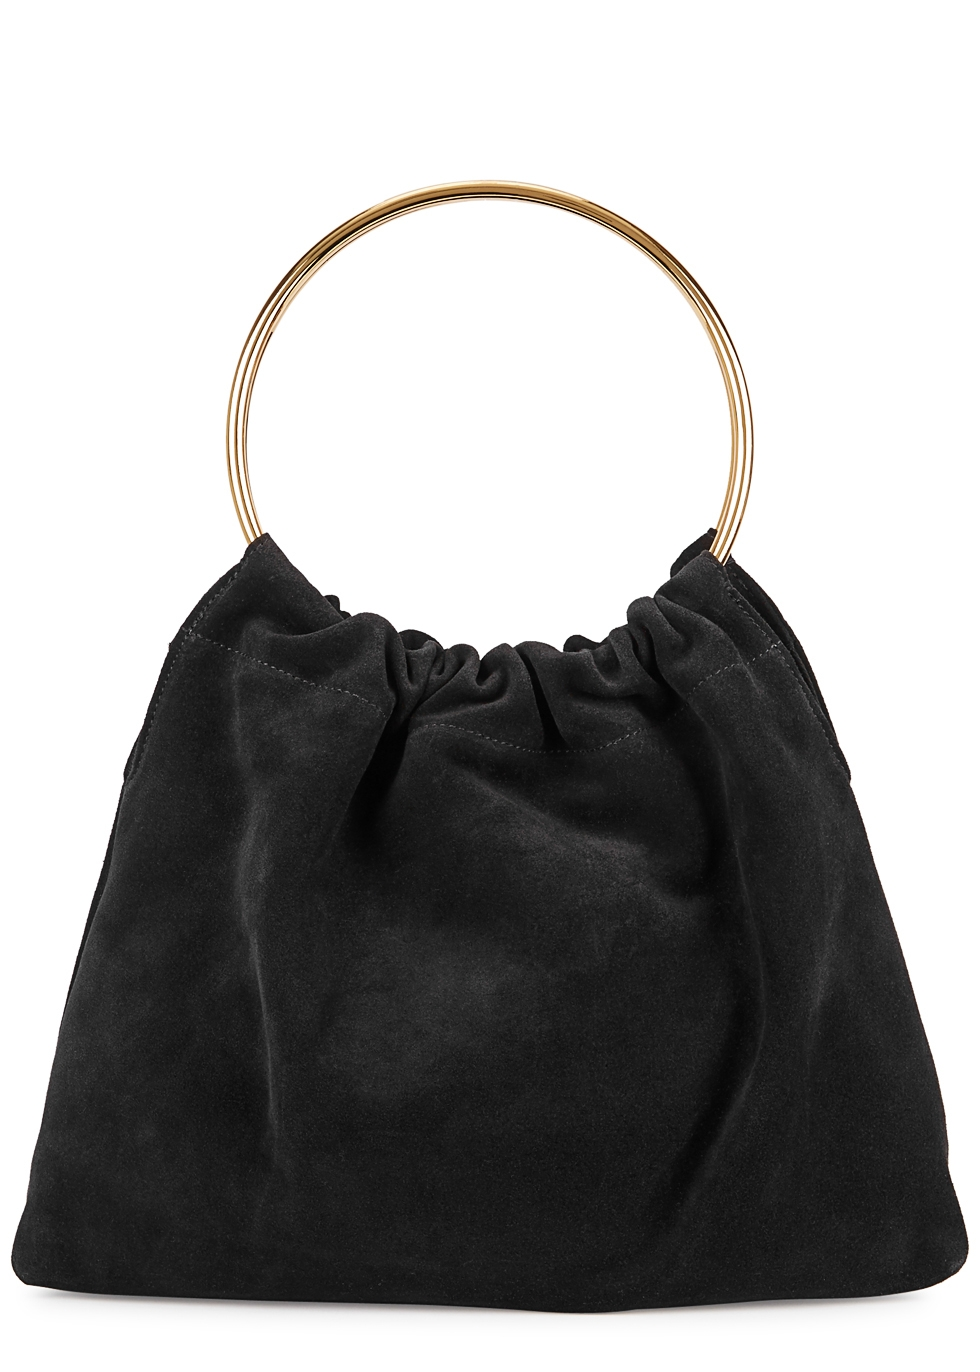 LITTLE LIFFNER Ring Purse Small Black Suede Tote